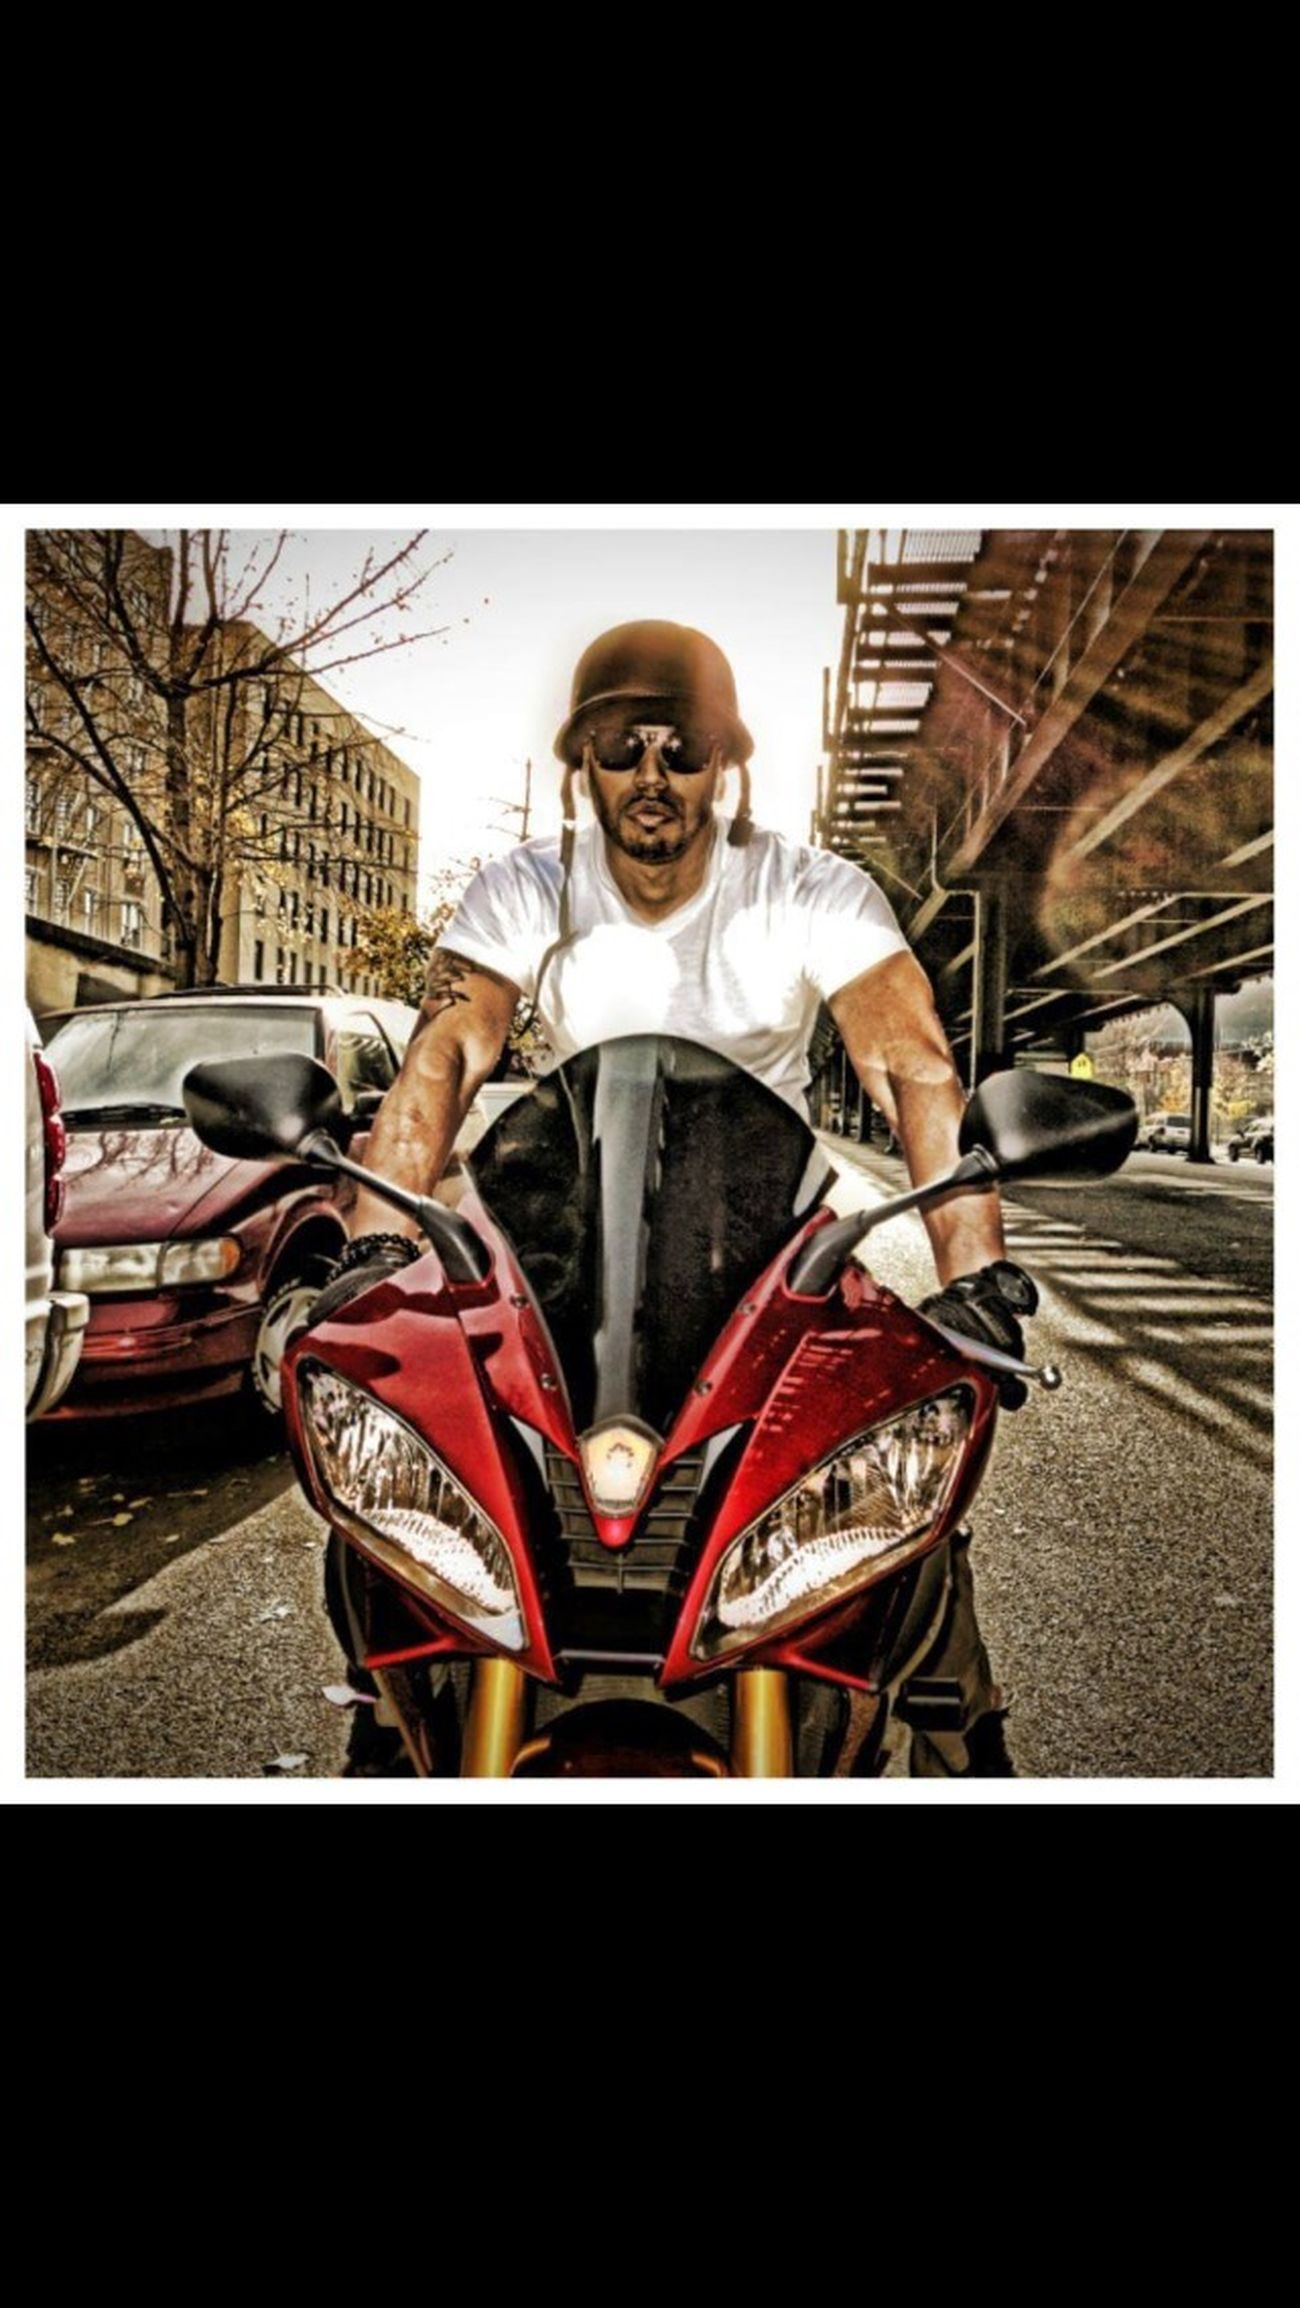 Riding Bronx Photo Shoot New York Enjoying Life Making Noise Stylin On Em (;